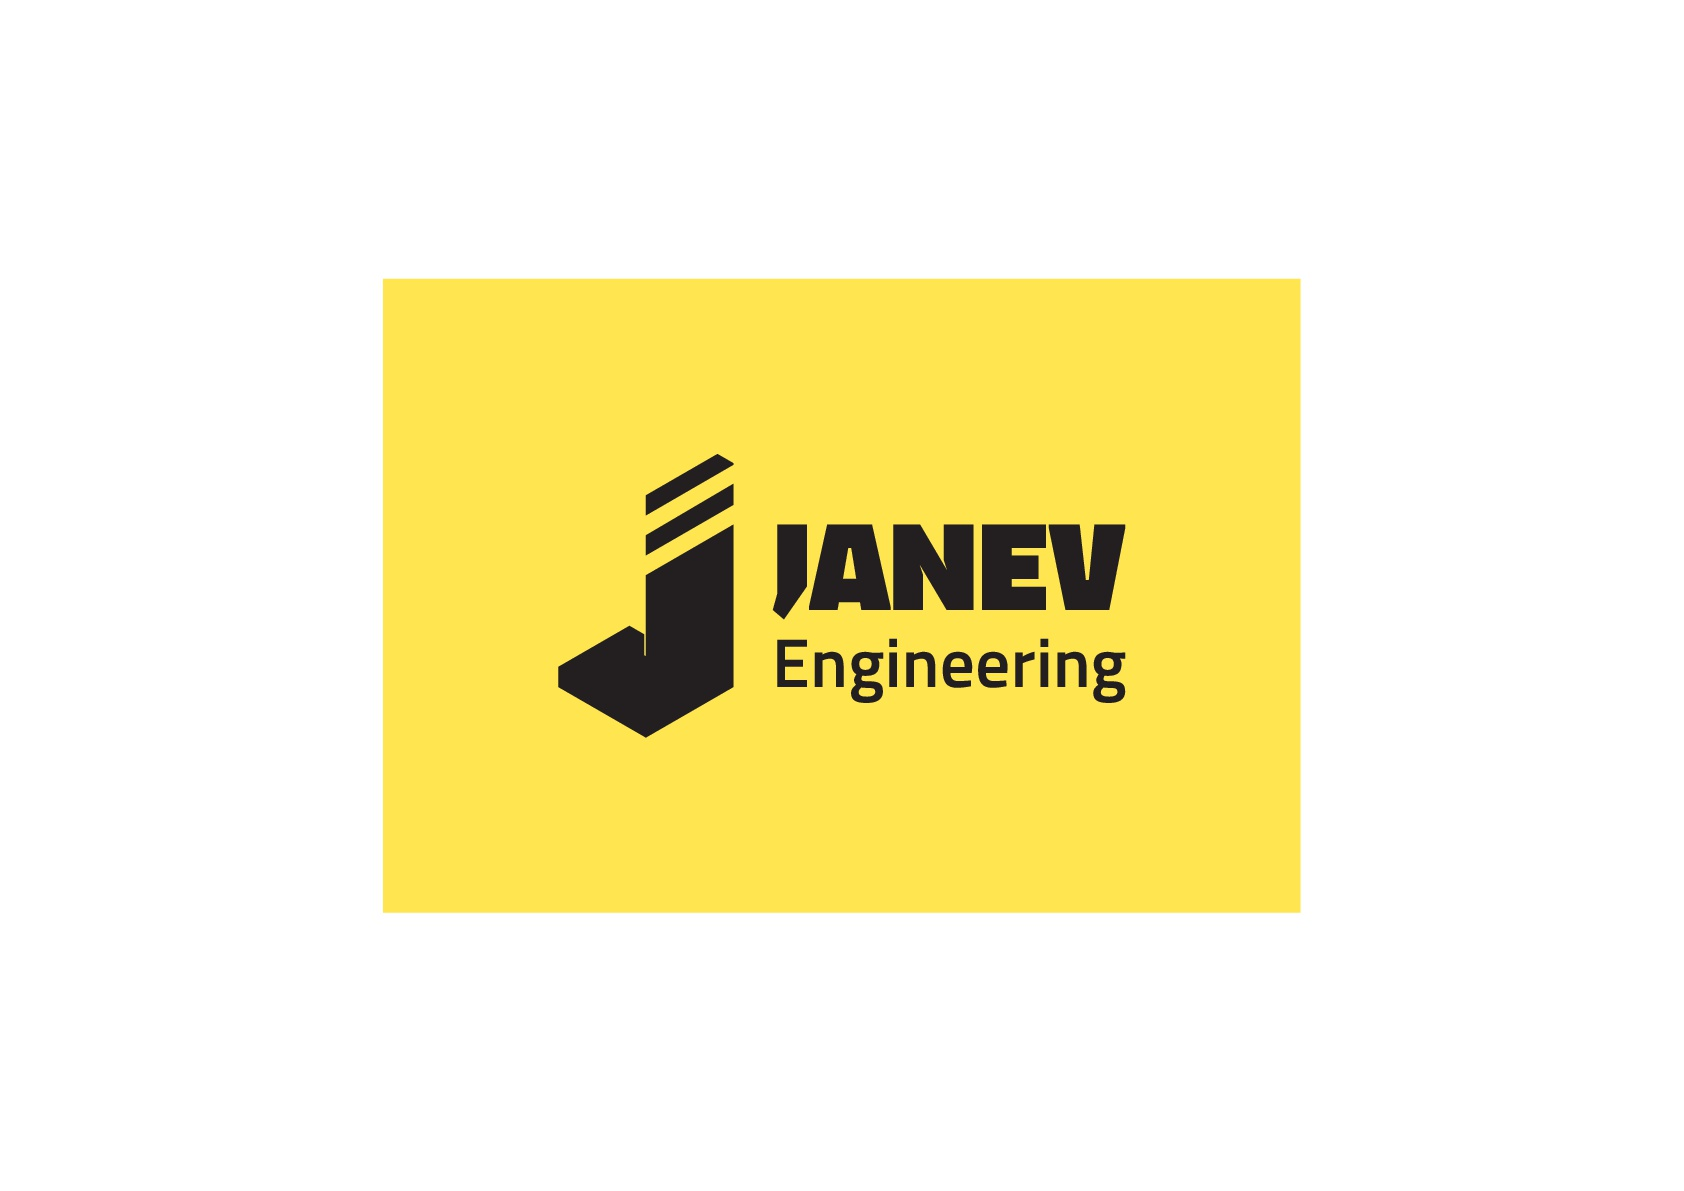 Janev Engineering